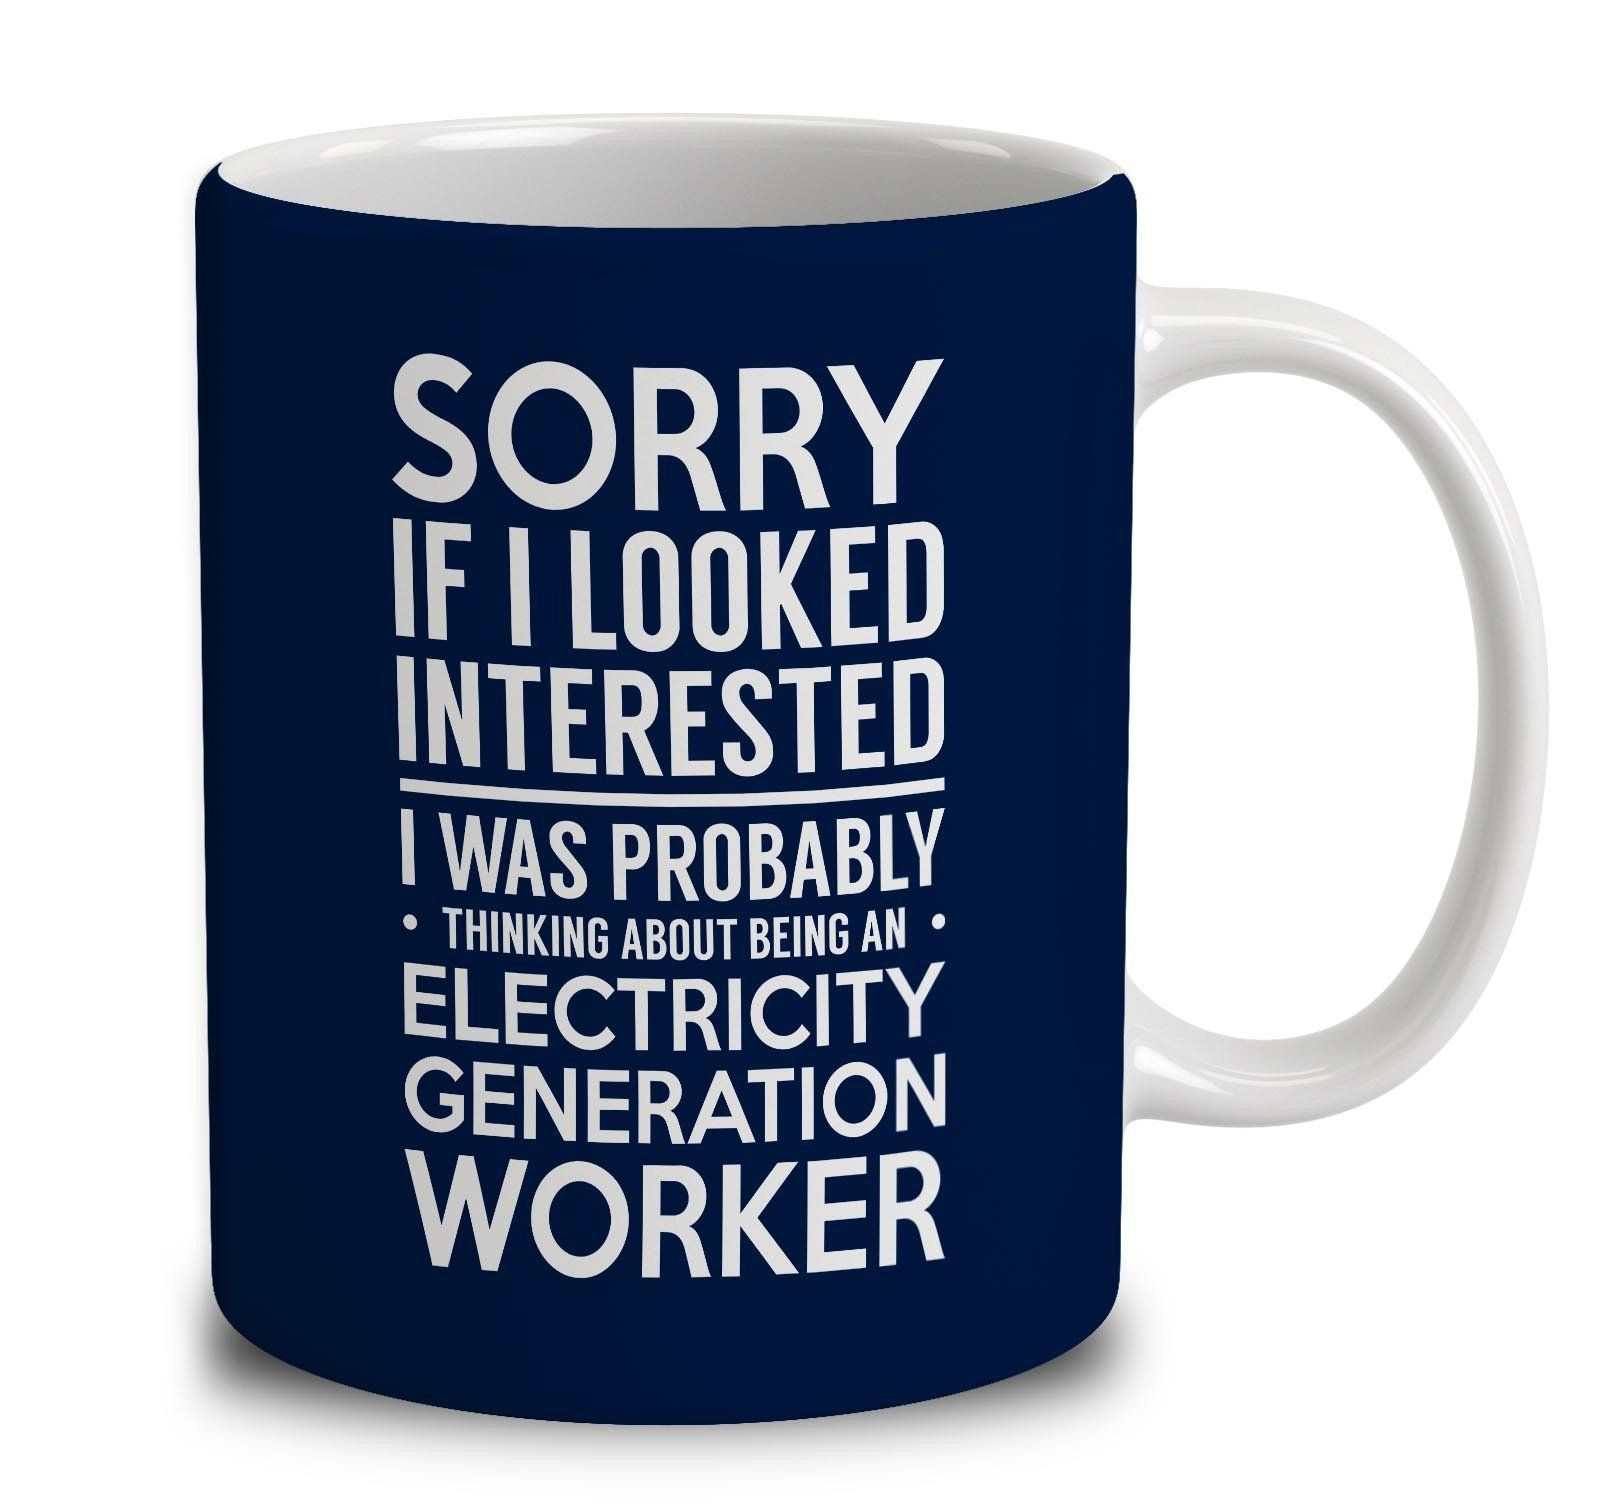 Probably Thinking About Being An Electricity Generation Worker